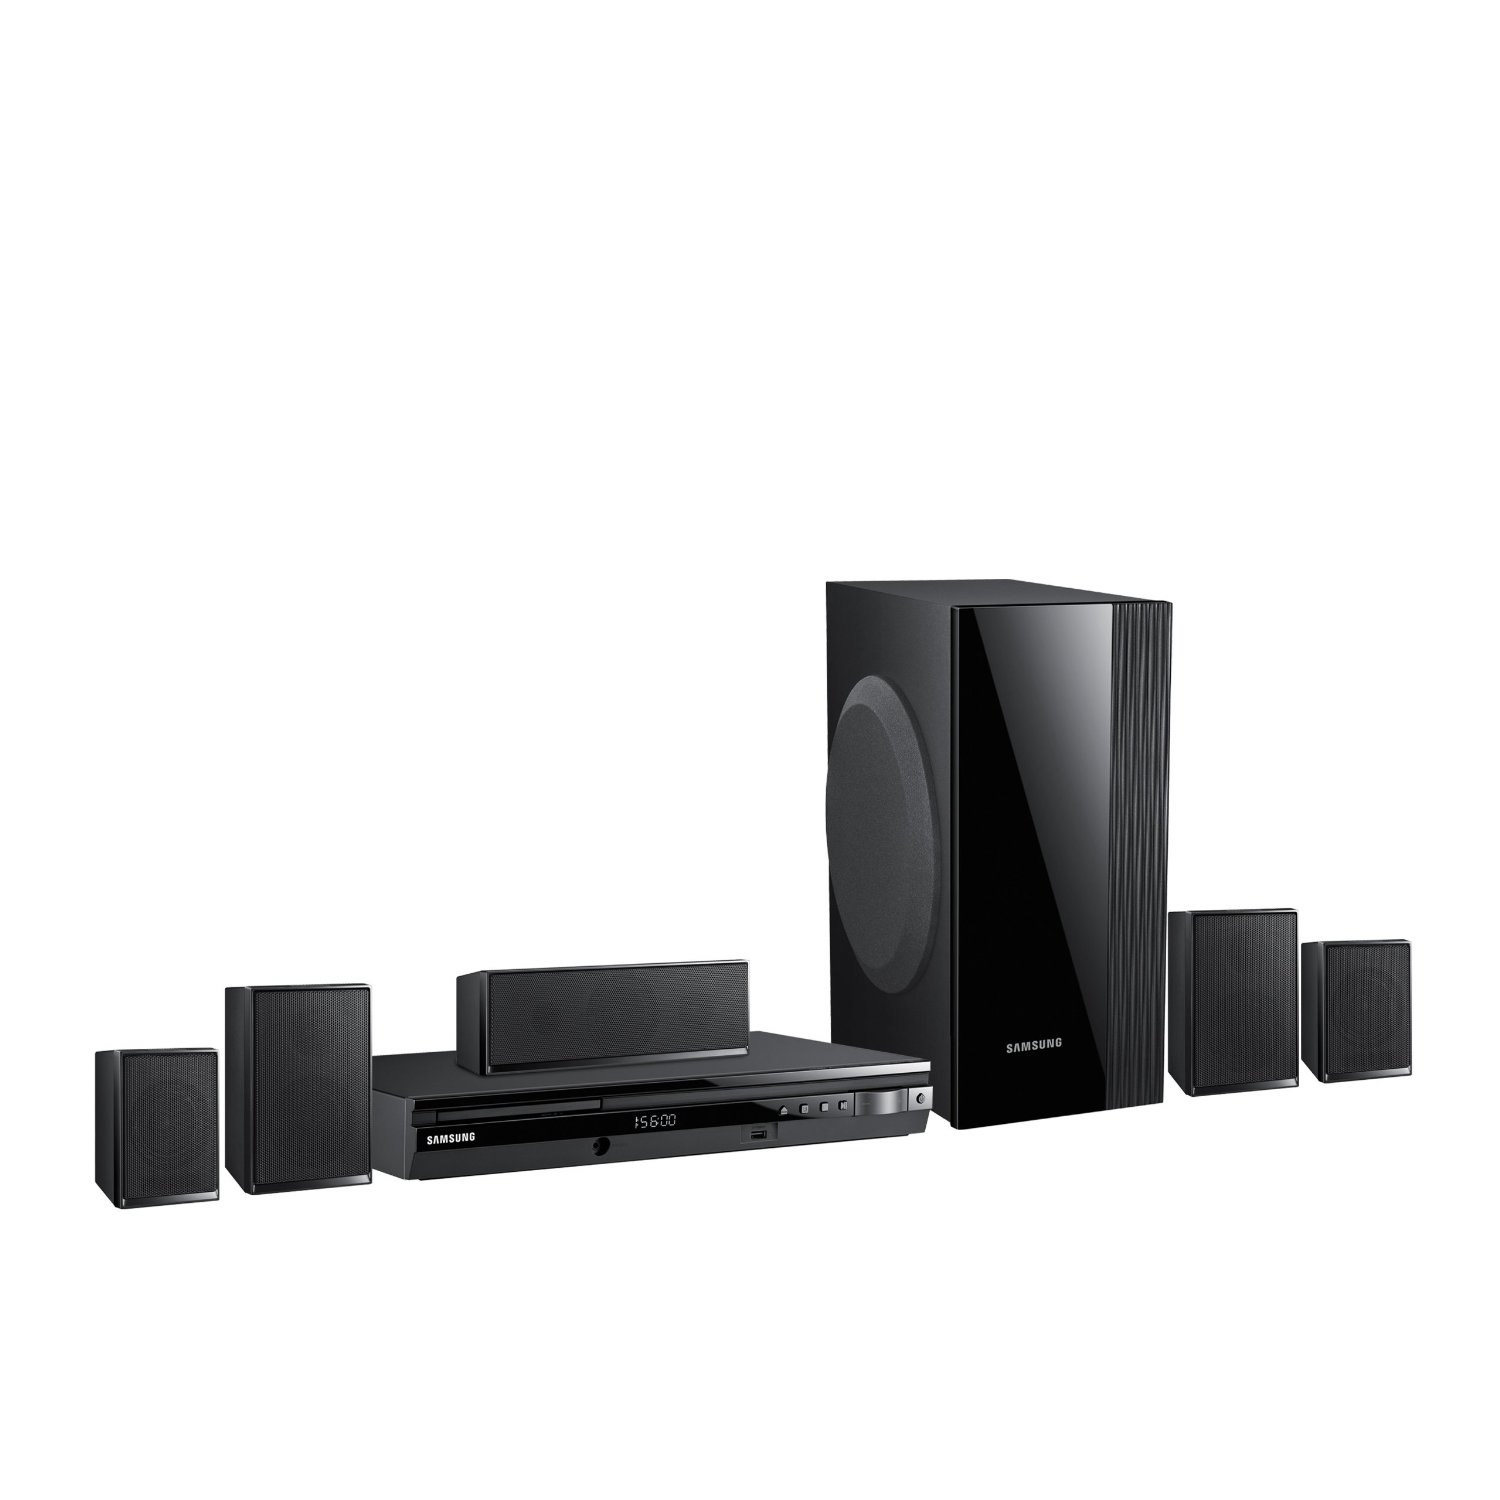 samsung ht e550 htib 5 1 channel 1000 watt home theater system samsung home theatre. Black Bedroom Furniture Sets. Home Design Ideas